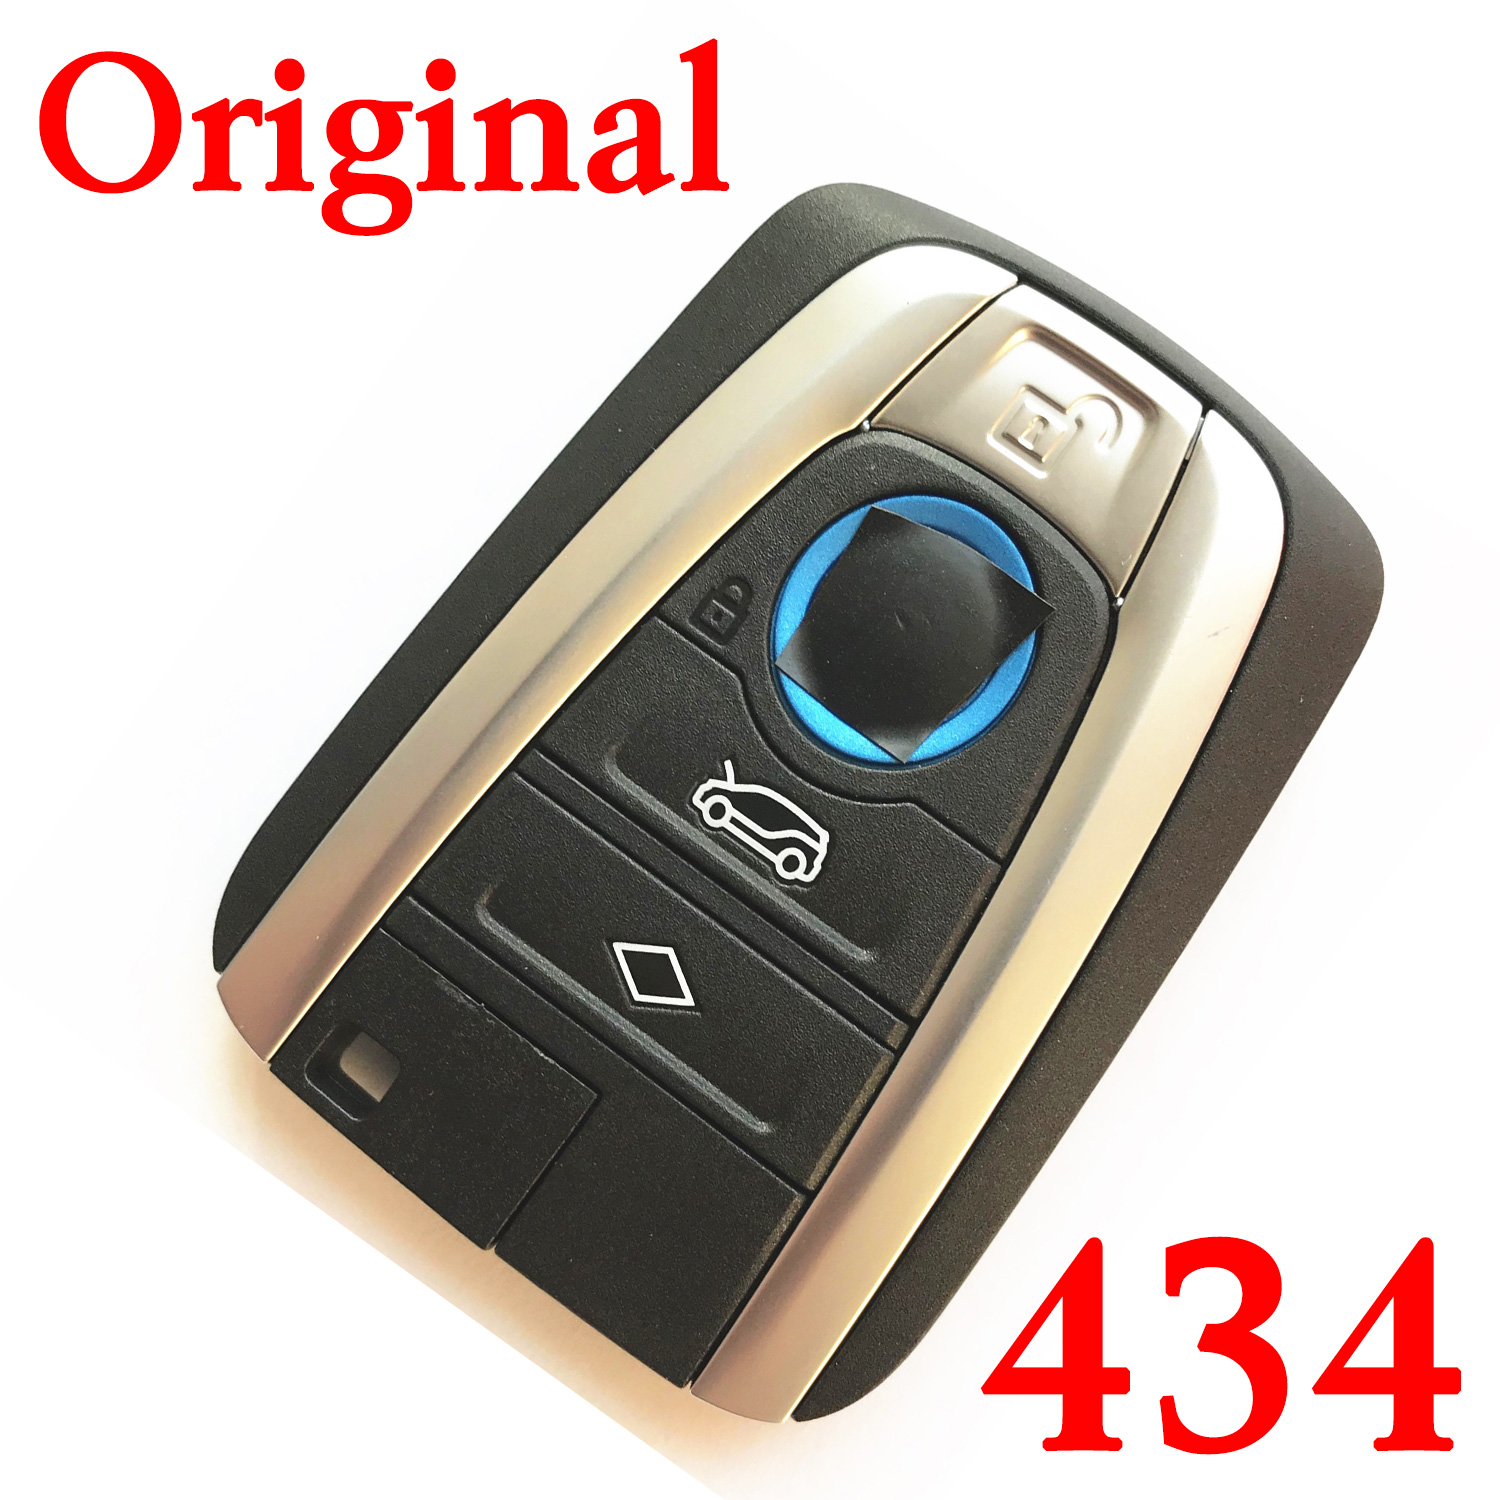 Original 434 MHz Smart Proximity Key for 2015-2017 BMW i3 / i8 / - CAS4+ FEM with Trunck